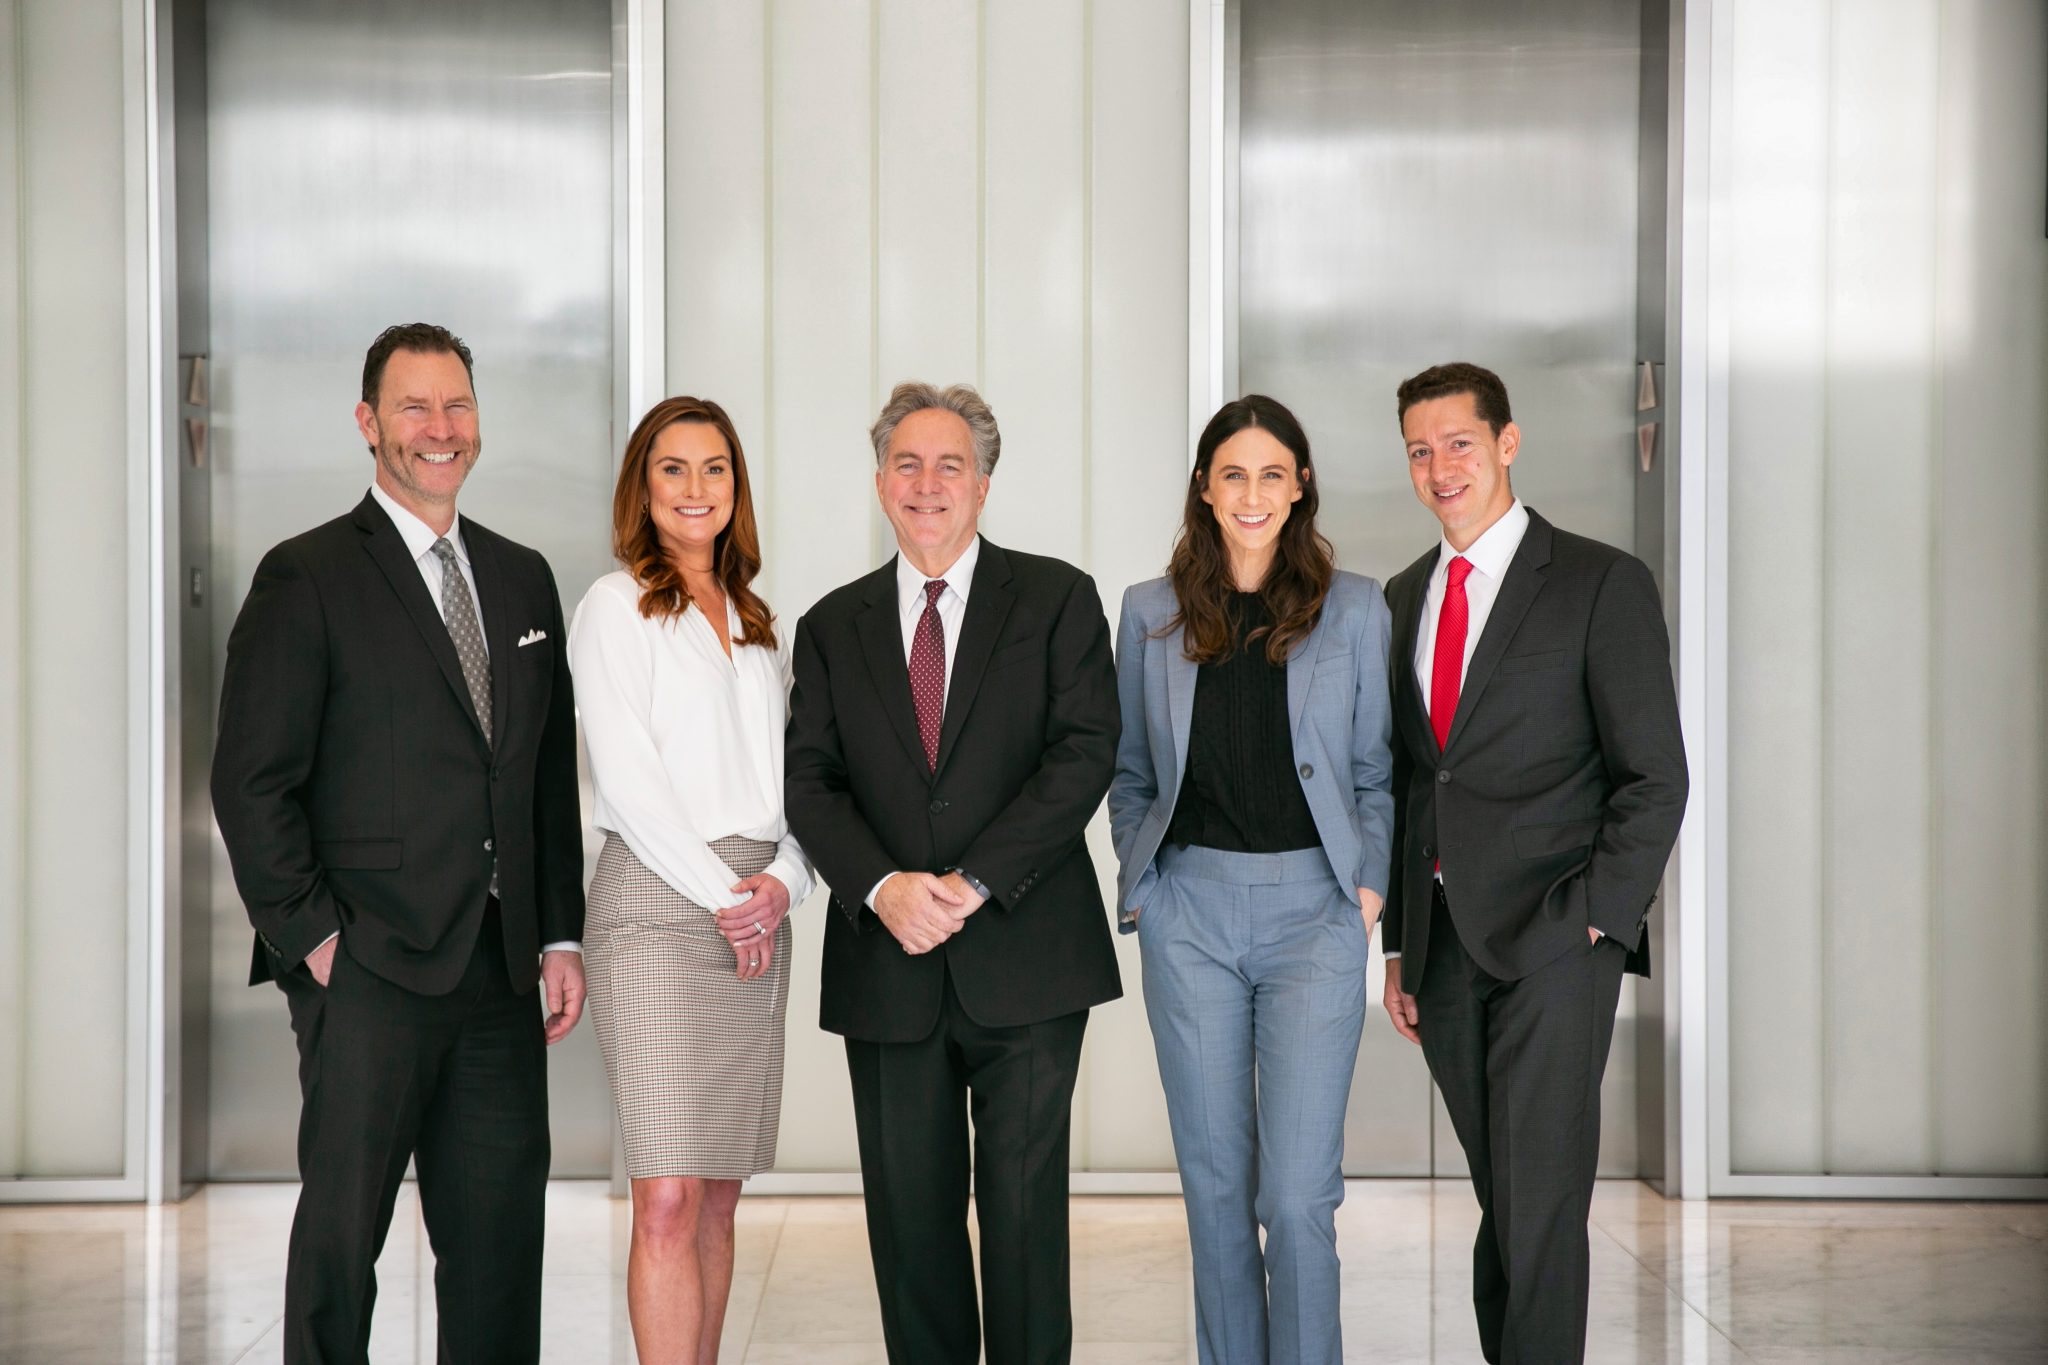 Group Photo of the Workplace Rights Attorneys at Kesluk, Silverstein, Jacob & Morrison, P.C.